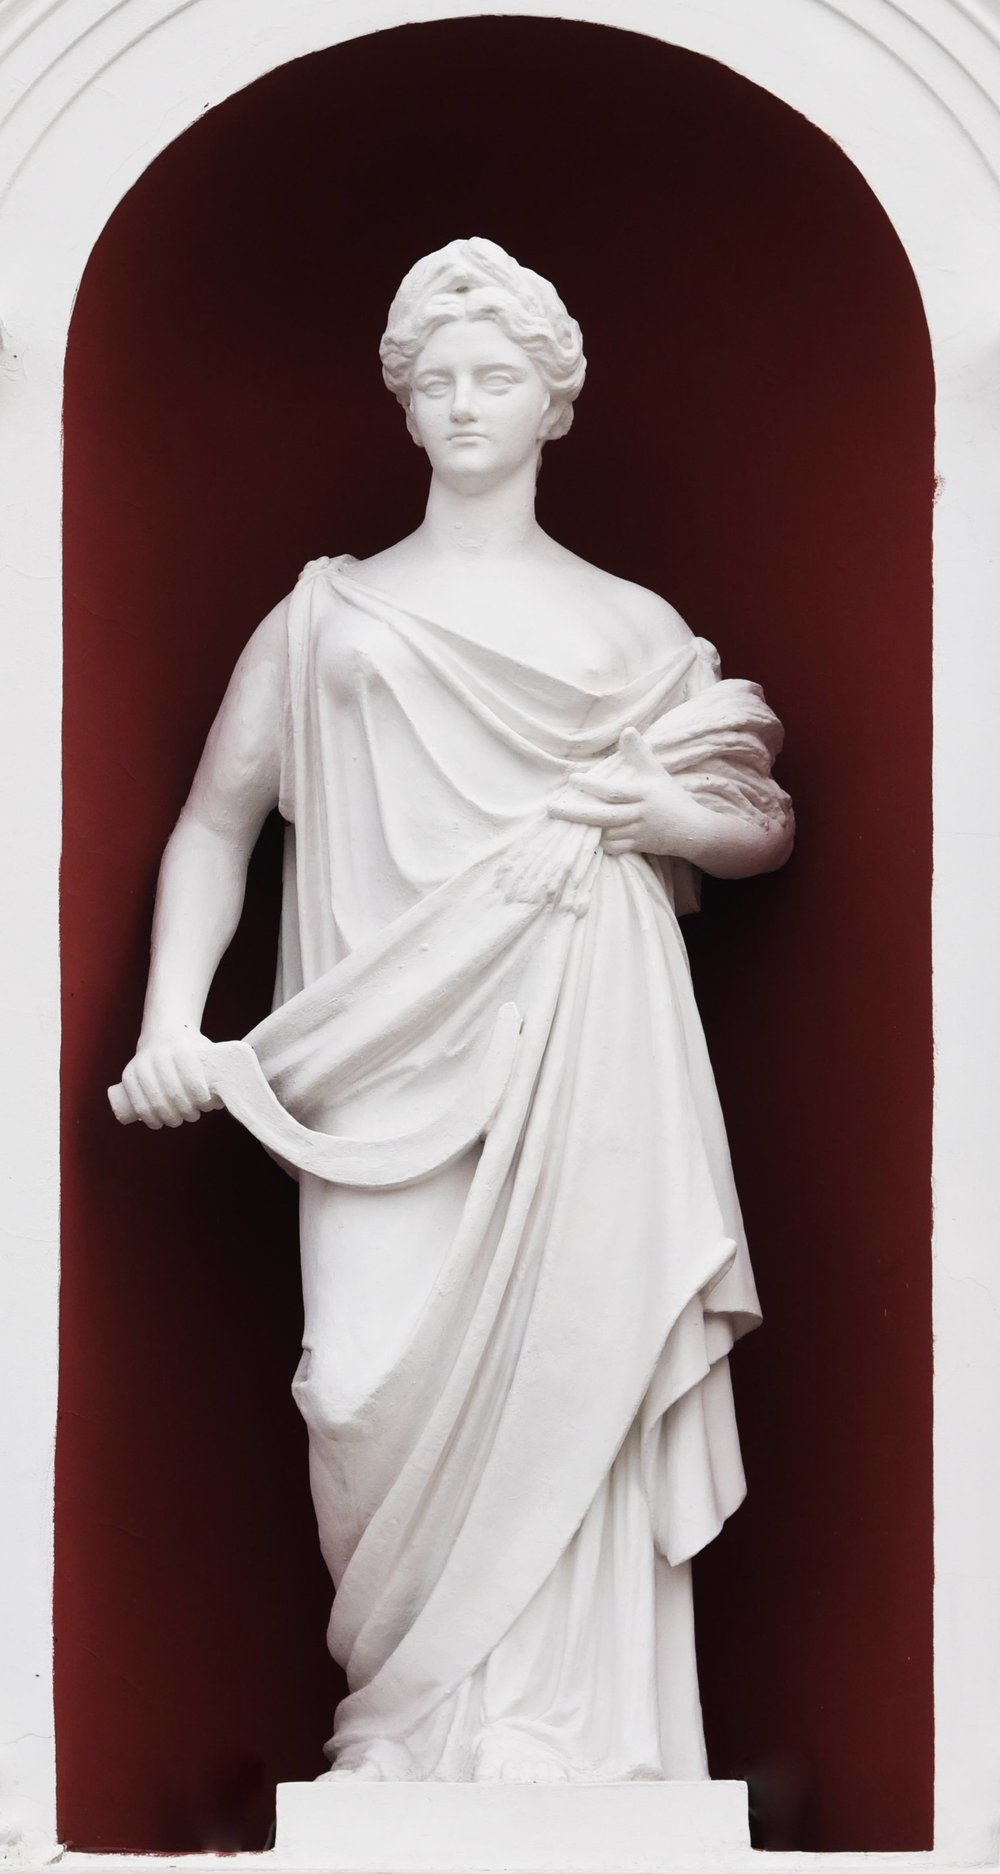 Image:   Ceres in mythology is the Roman goddess of the harvest, who presides over grains and the fertility of the earth. Clearly the issue of soil fertility has been coming for a very long time. Ceres, or Demeter as her Greek counterpart is known, is depicted holding a sickle and a harvest of grain. In ancient times soil fertility was ascribed to the workings of the gods. Today we can see ' the gods ' by looking through a microscope.